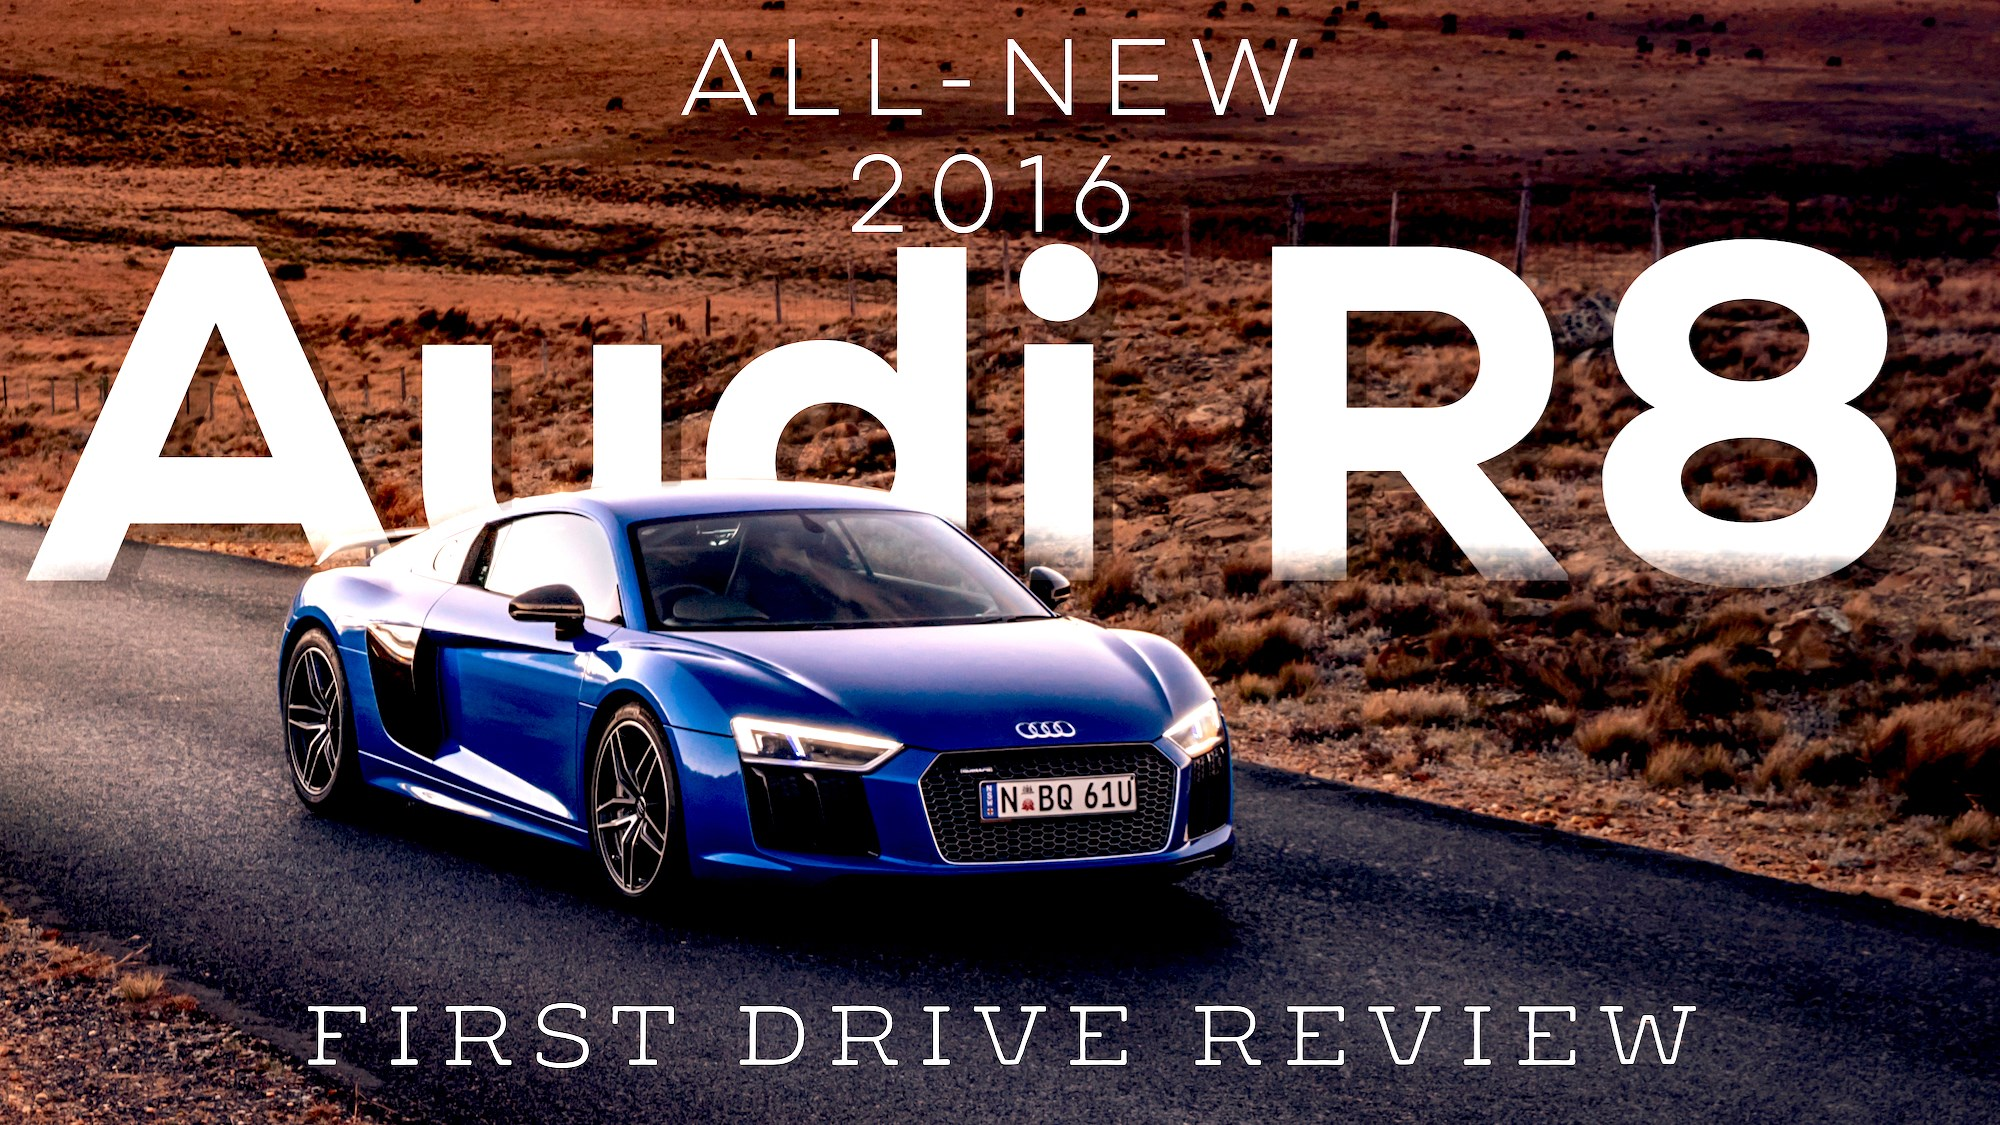 2016 Audi R8 - First Drive Review